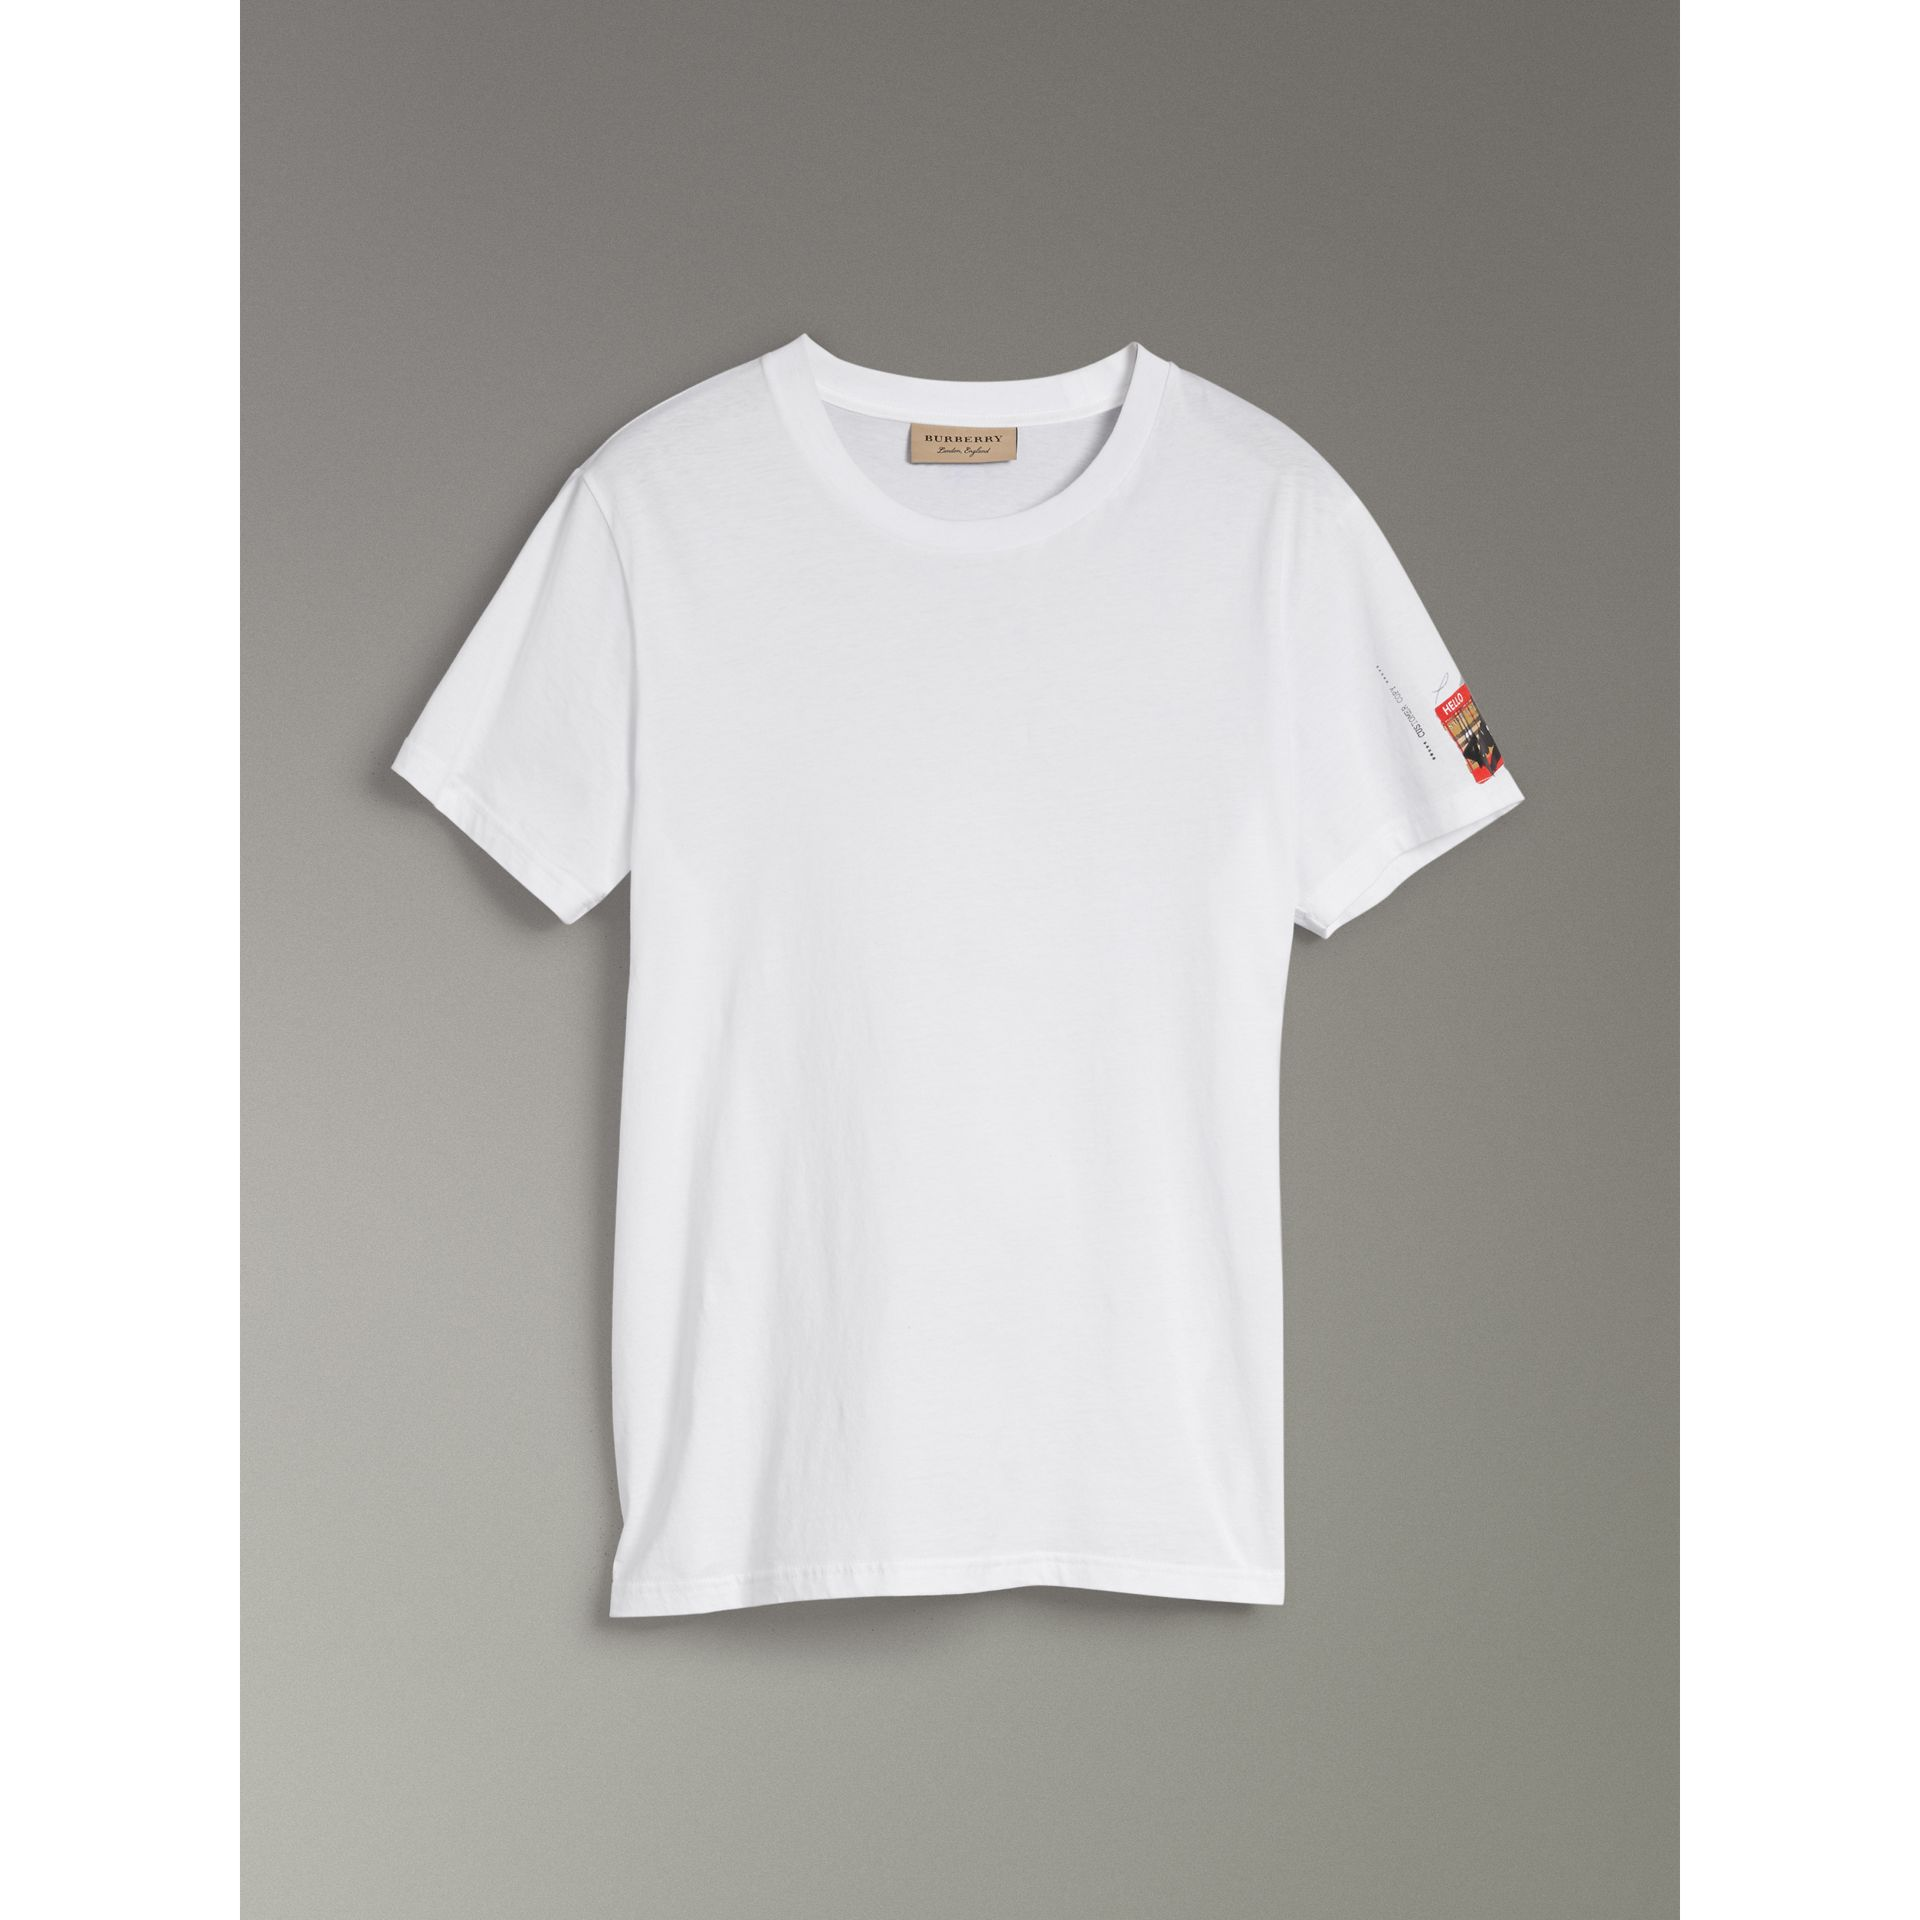 Burberry White Graffitied Ticket Print T-shirt